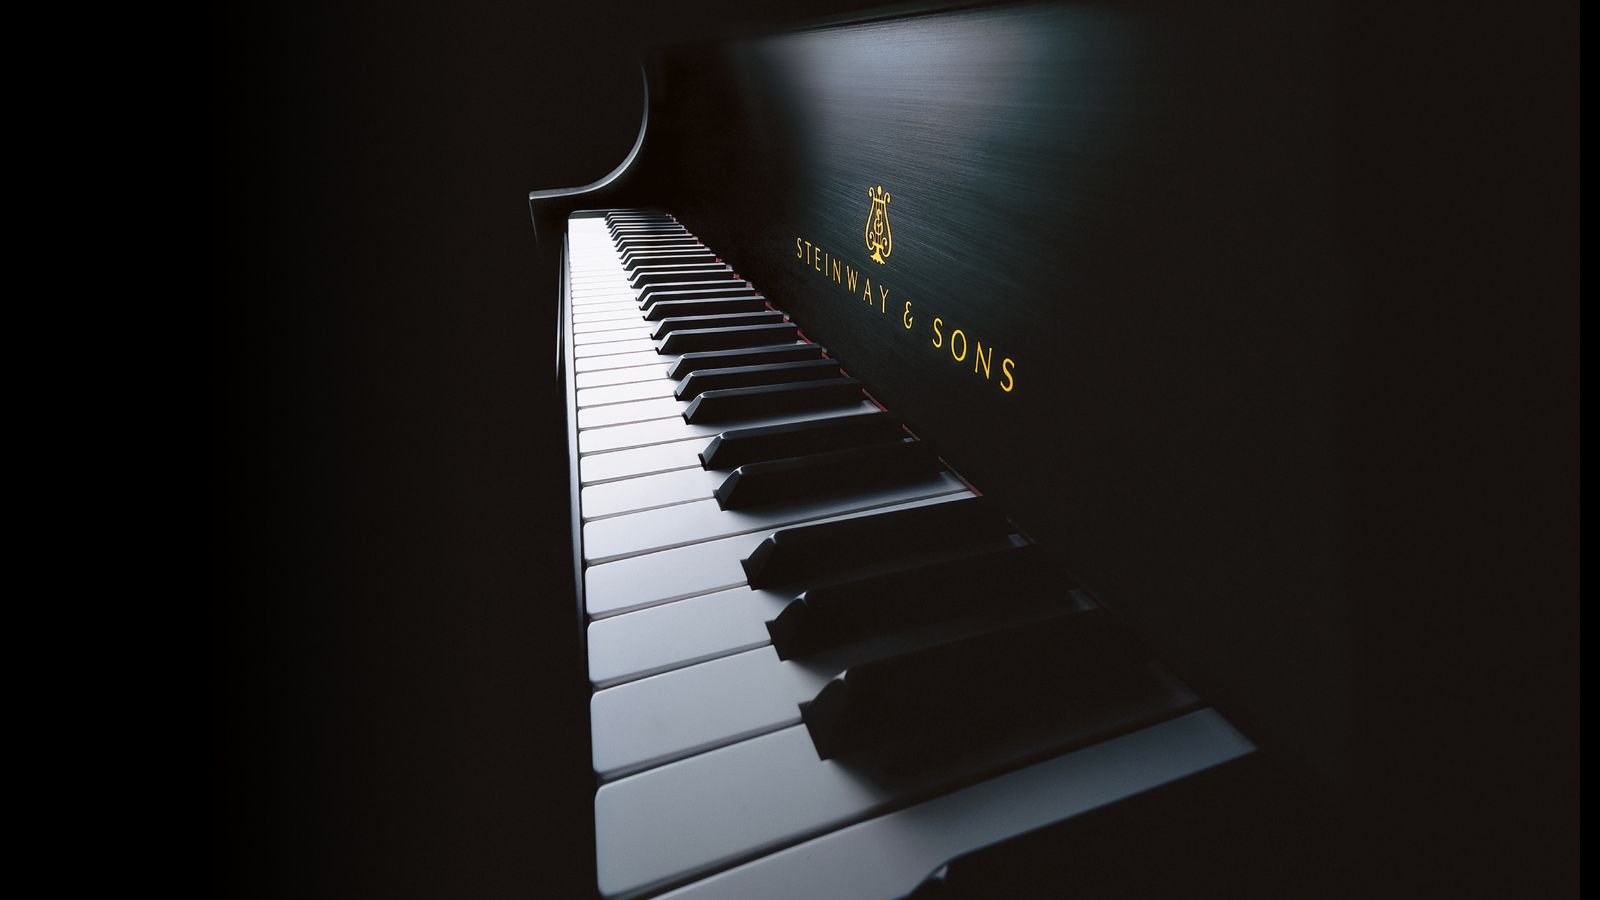 2018 steinway piano competition steinway sons. Black Bedroom Furniture Sets. Home Design Ideas